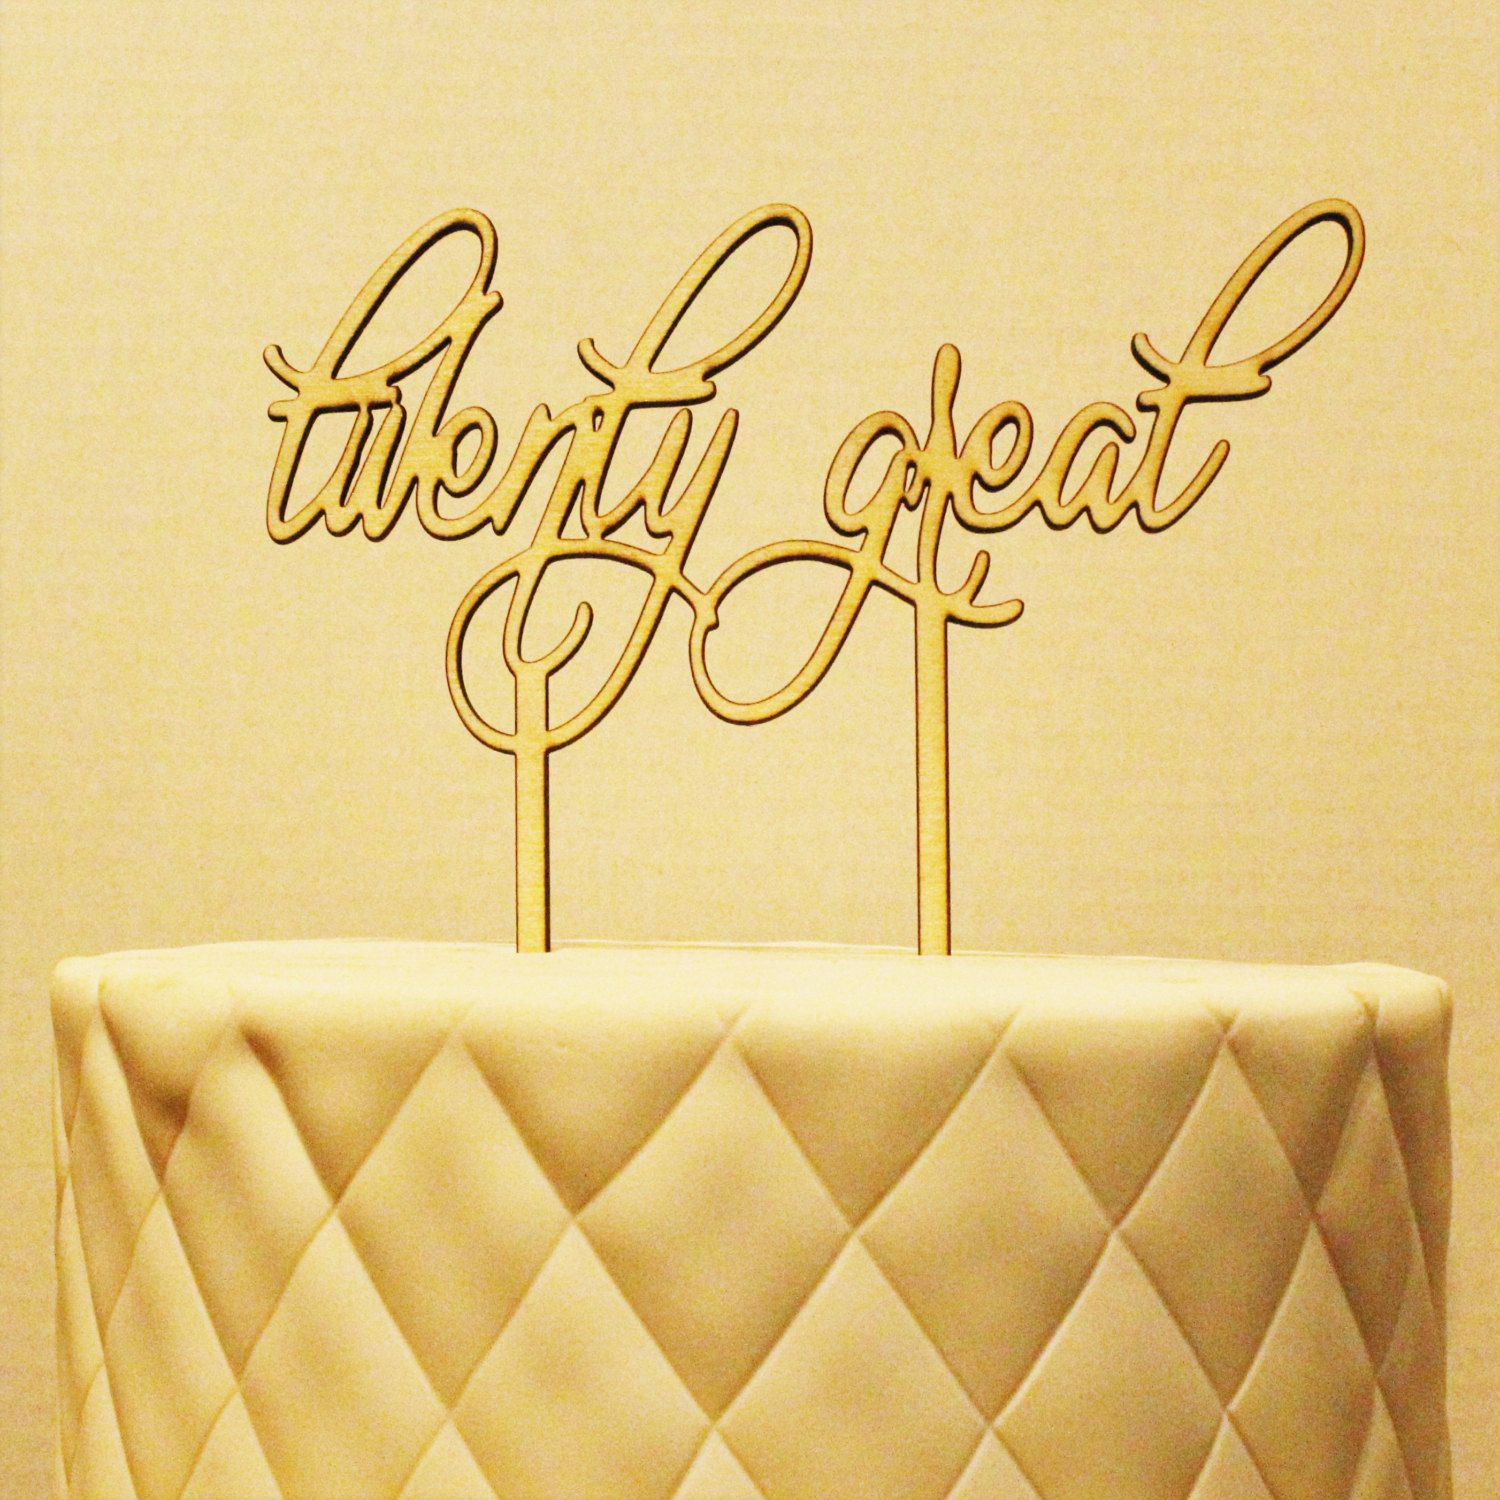 Twenty Great Happy Birthday Cake Topper | Happy birthday cake topper